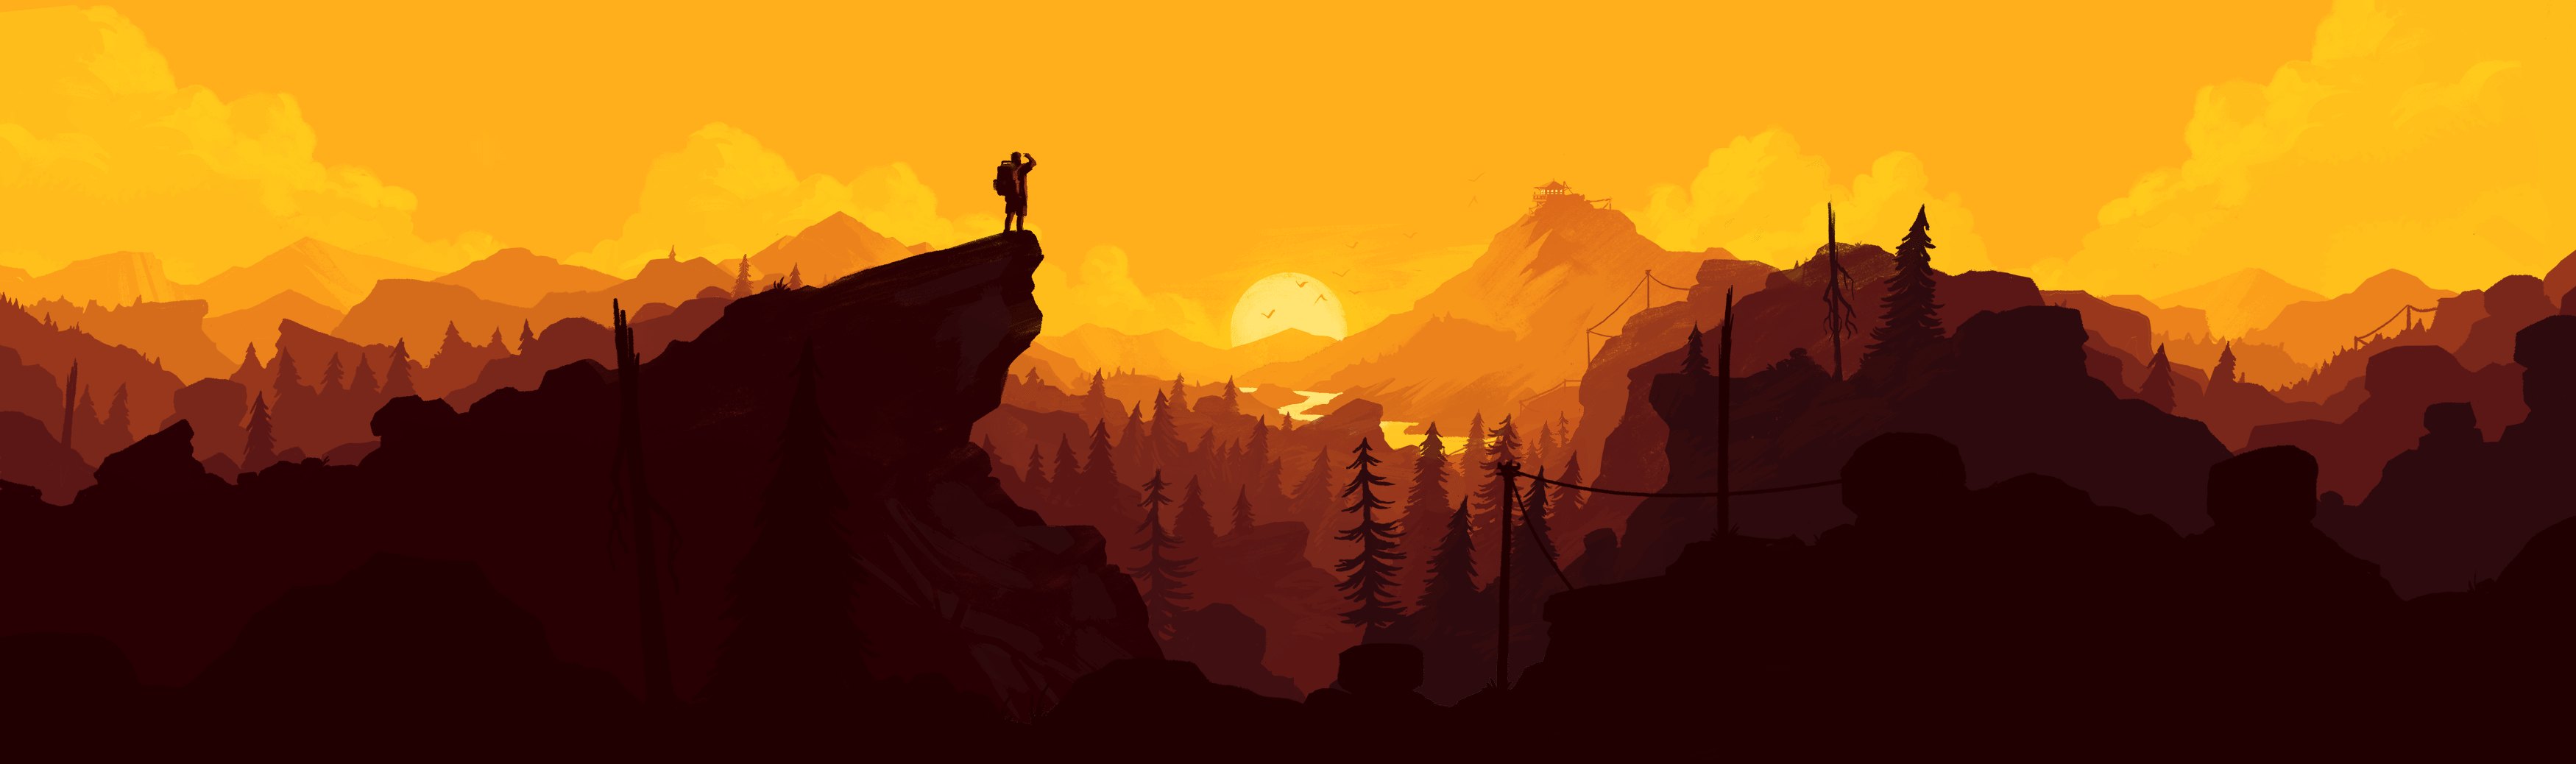 New Firewatch art Top reddit wallpapers Pinterest